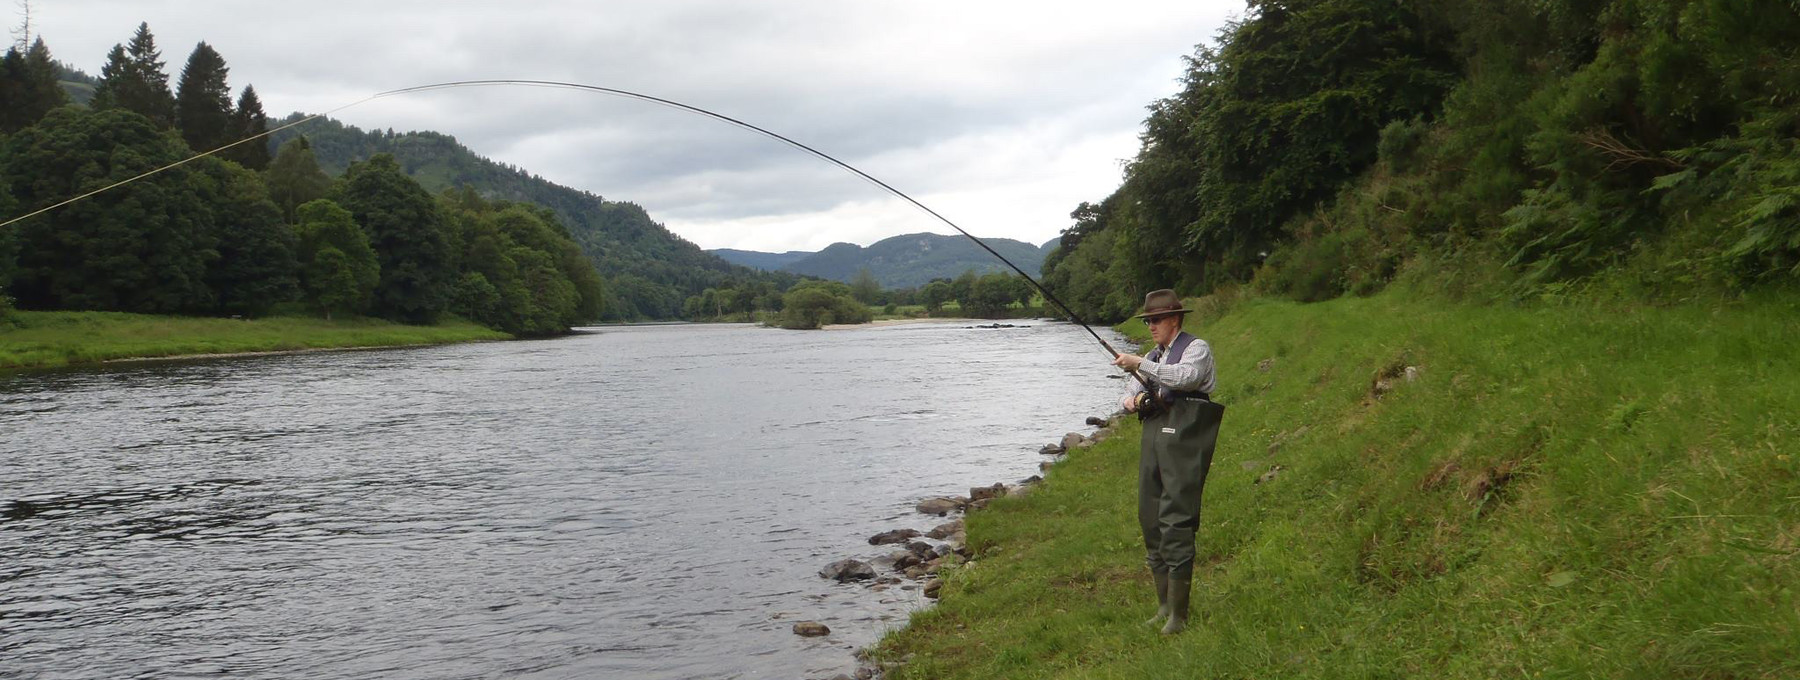 Fishing on the banks of the River Tay at Murthly estates - Casting off from the banks of the River Tay, Perthshire.